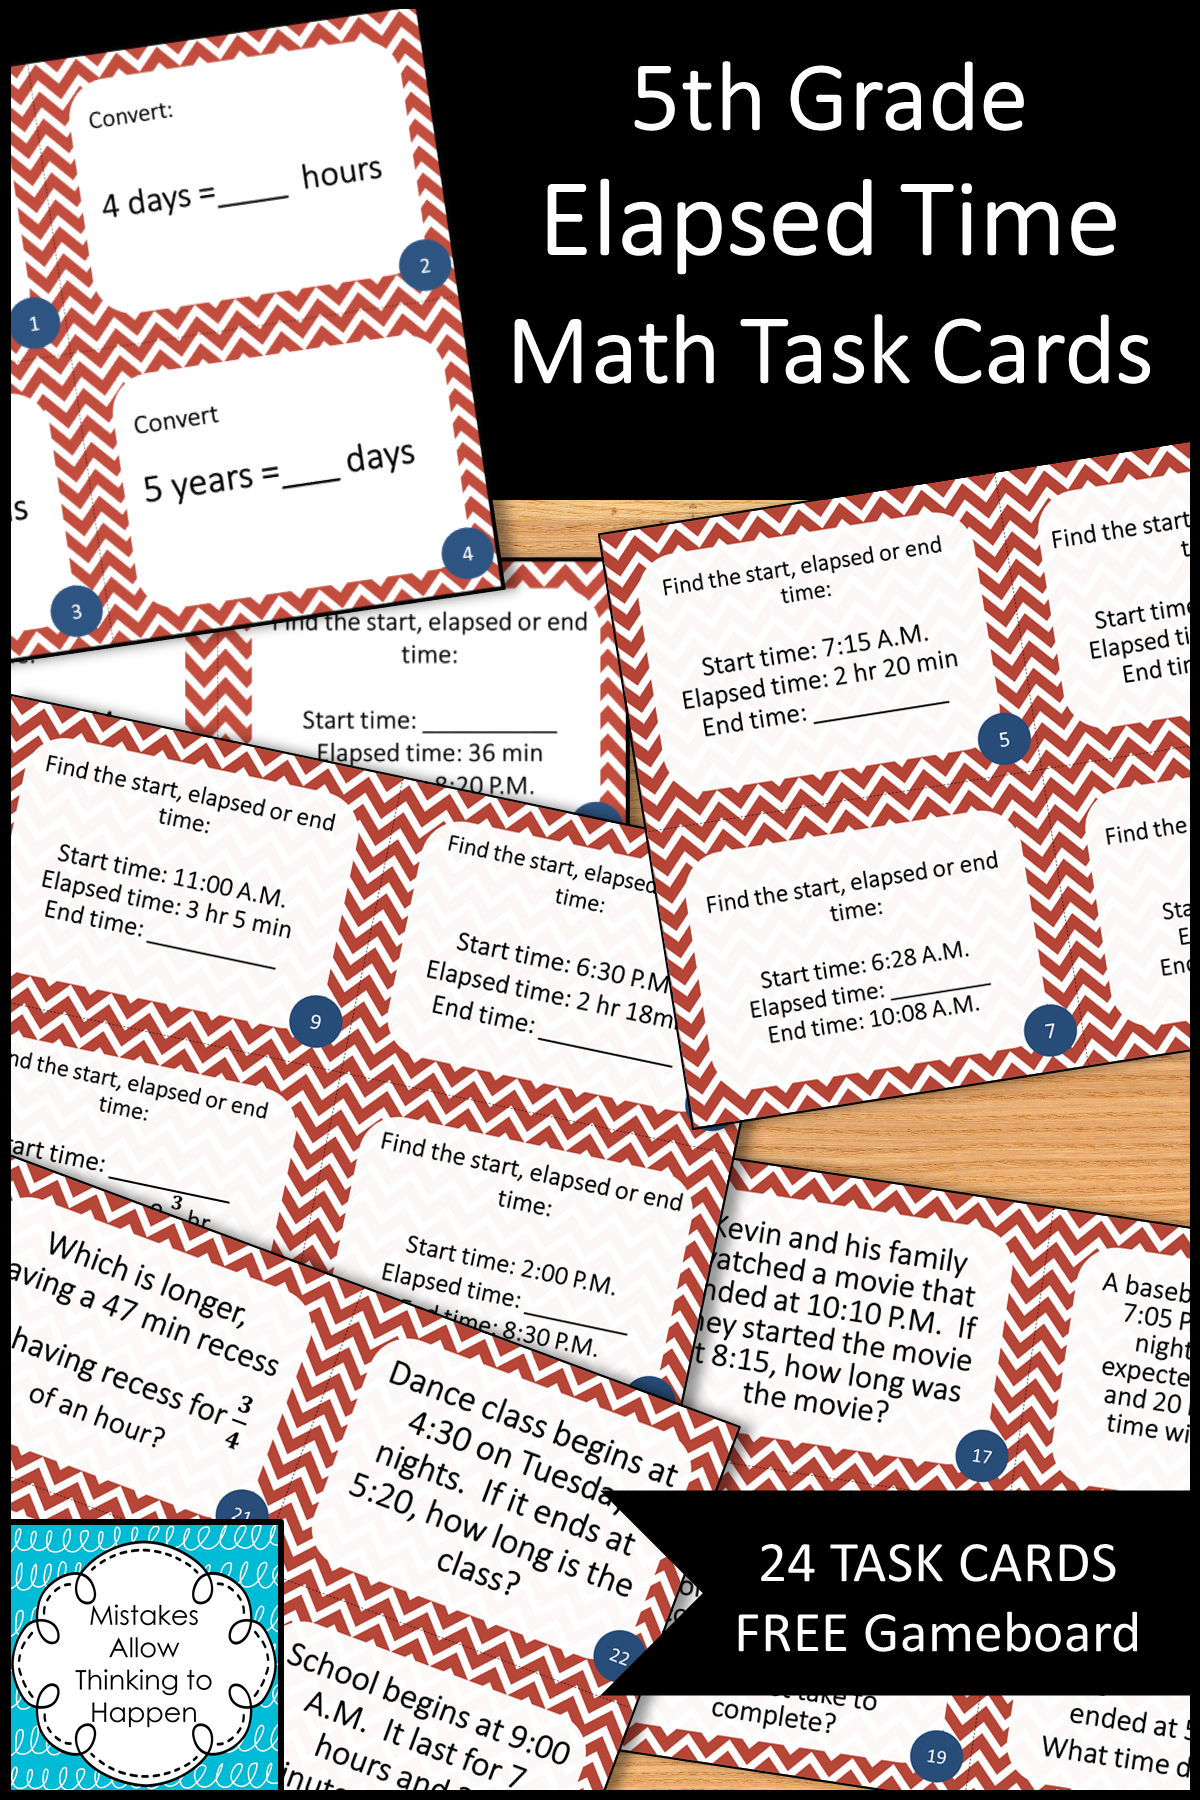 5th Grade Elapsed Time Math Task Cards